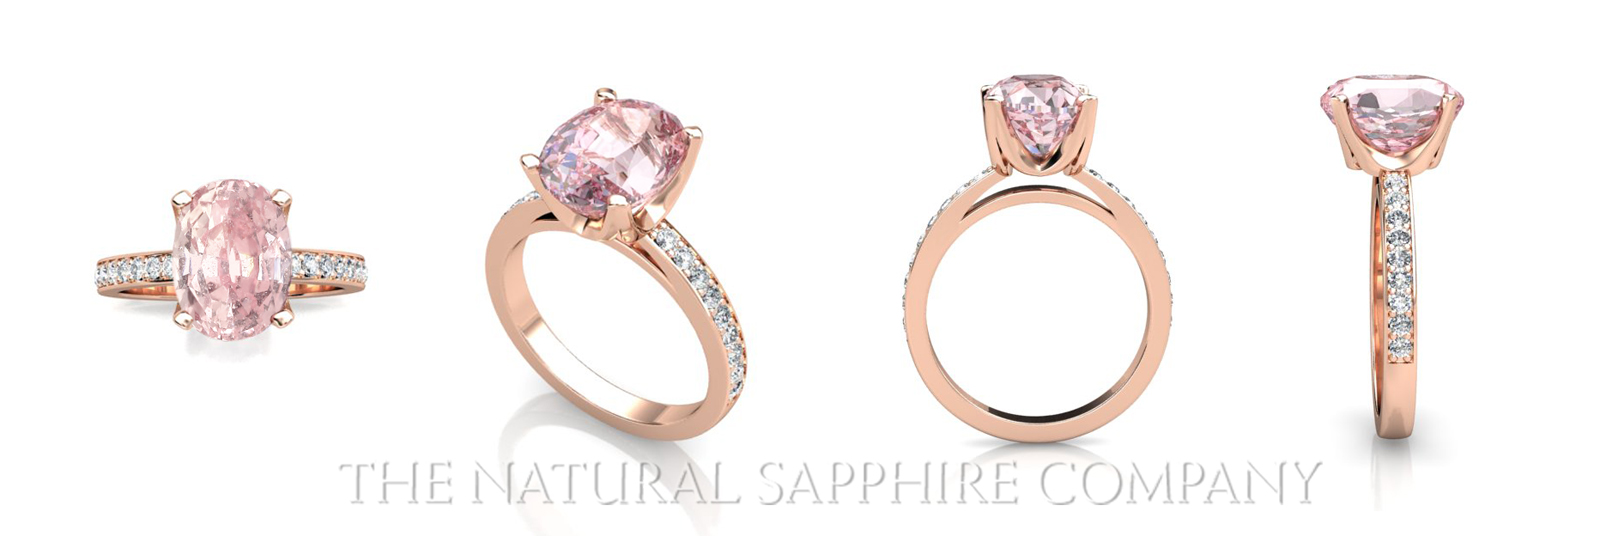 natural by white rings more la engagement products design gold pink padparadscha wedding size ring diamond cluster sapphire in